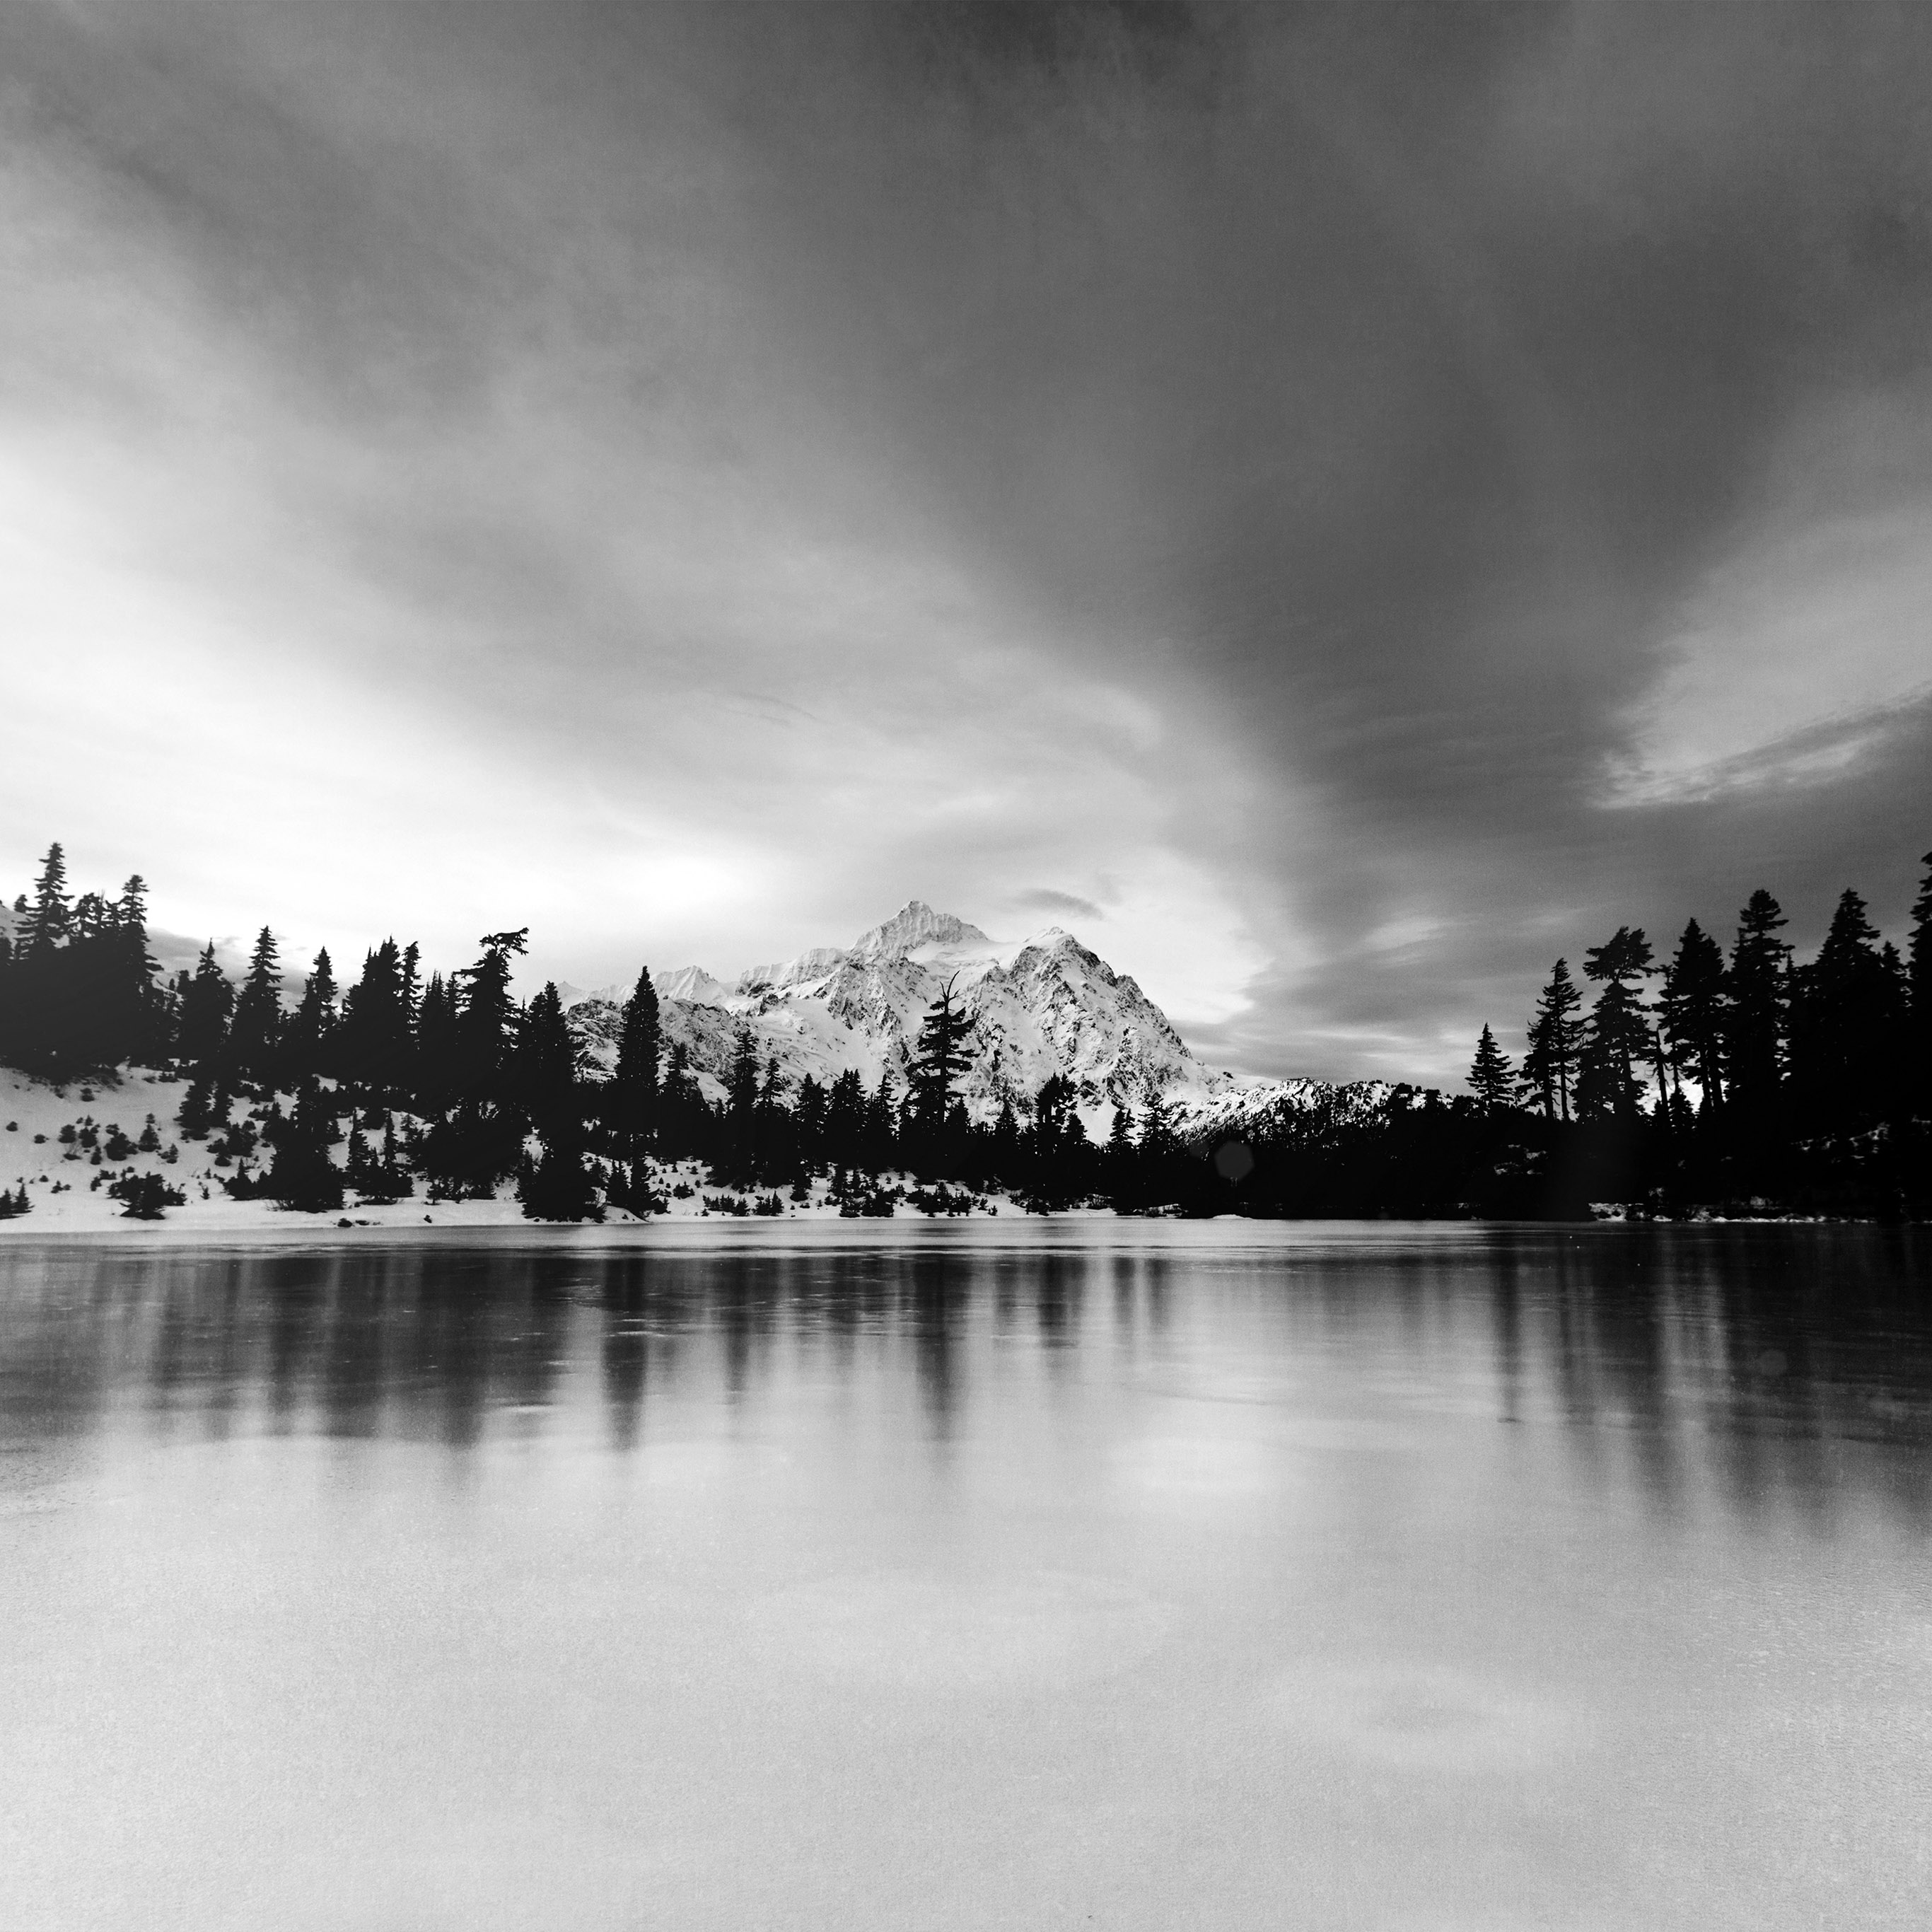 Ni39-frozen-lake-winter-snow-wood-forest-cold-bw-dark